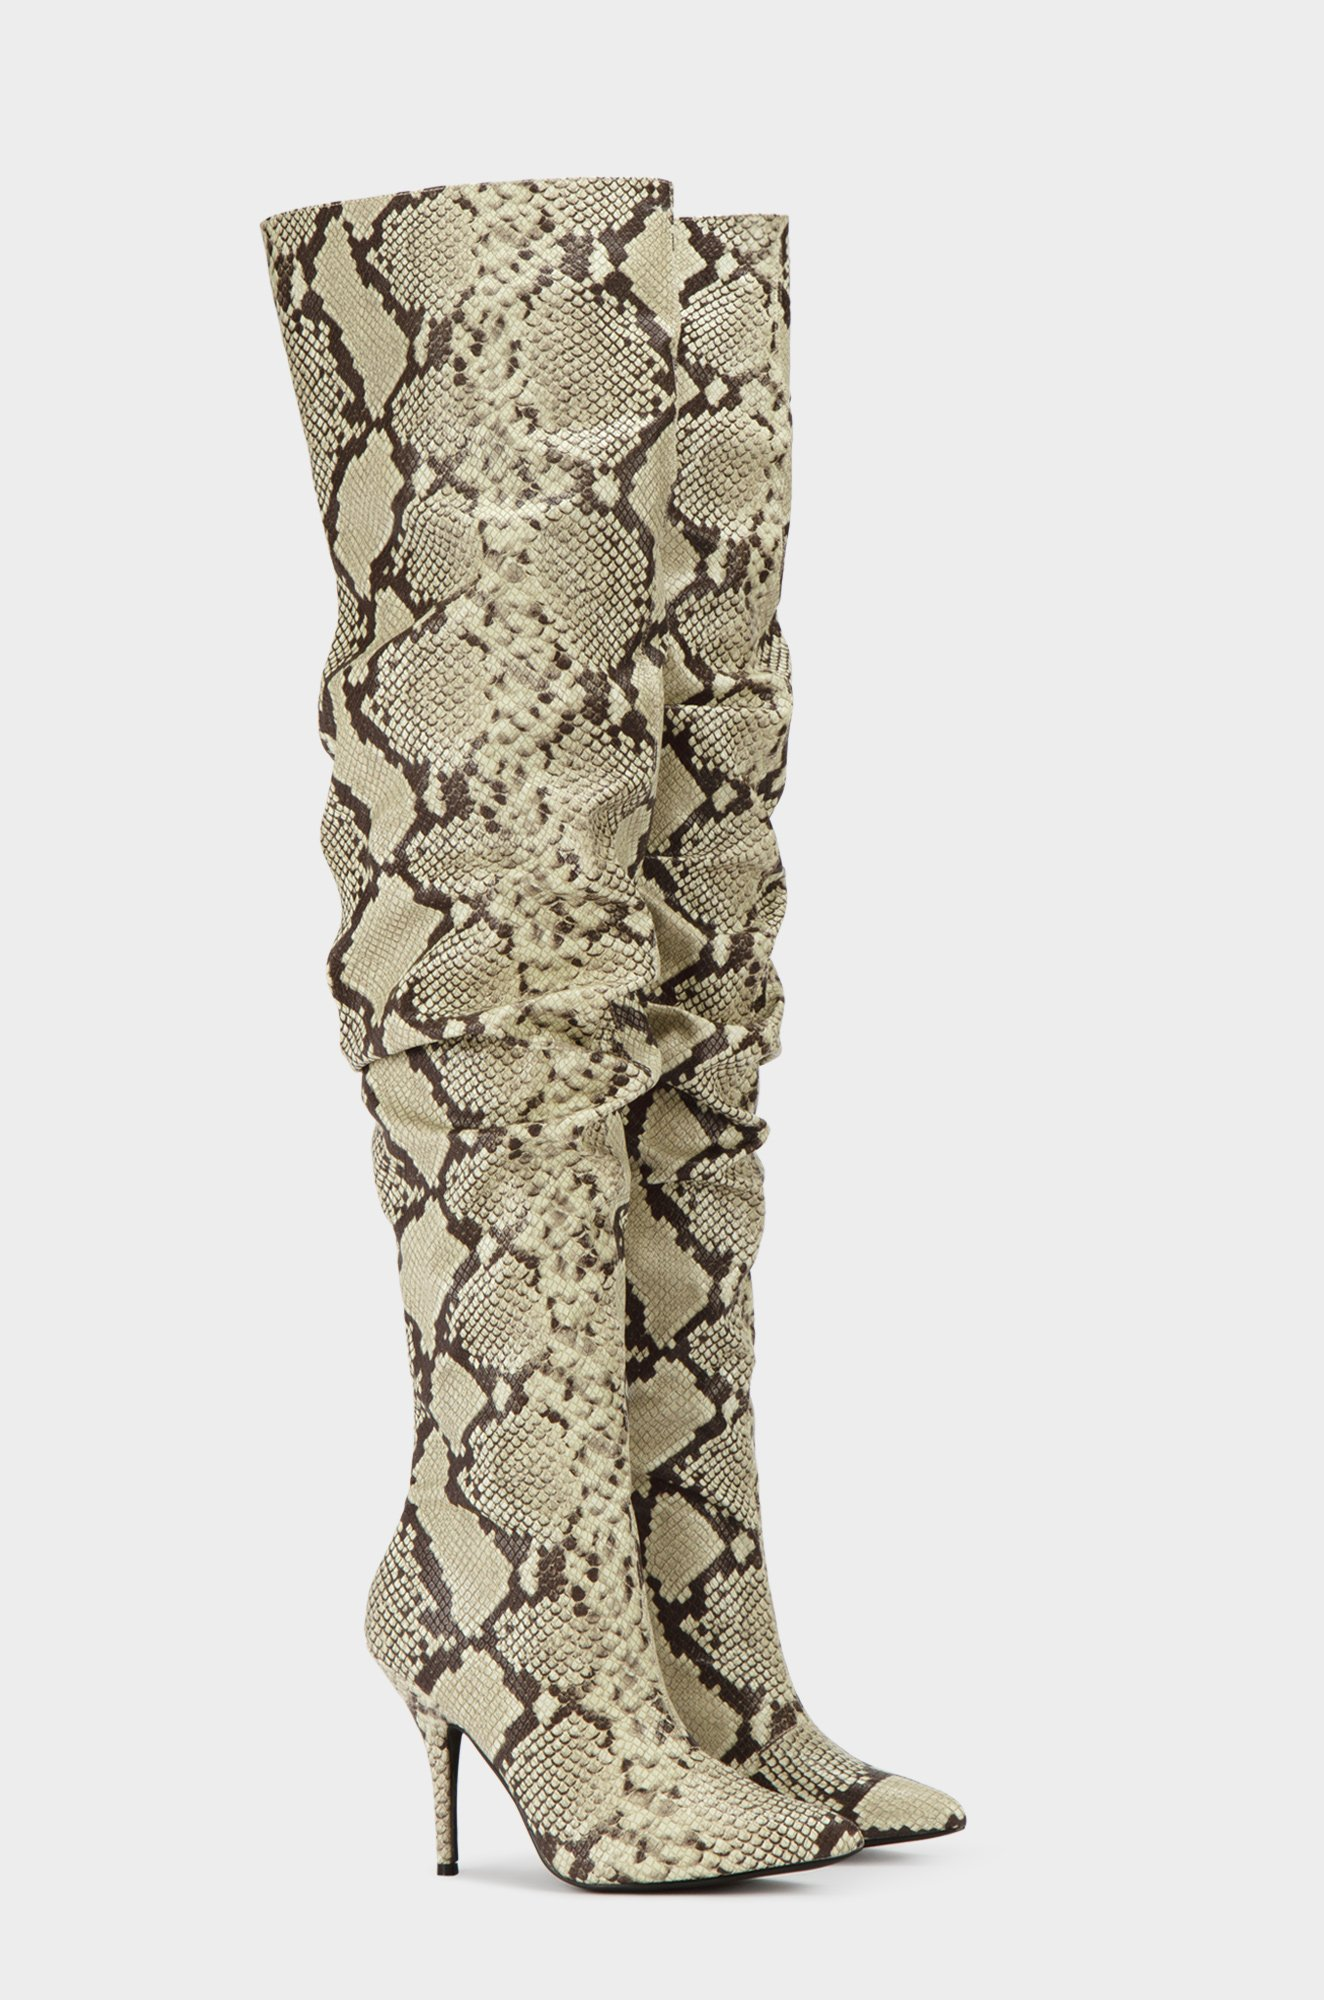 Cape-Robbin-Bown-Snake-Thigh-High-Slouch-Pointed-Toe-Over-The-Knee-Stiletto-Boot thumbnail 54